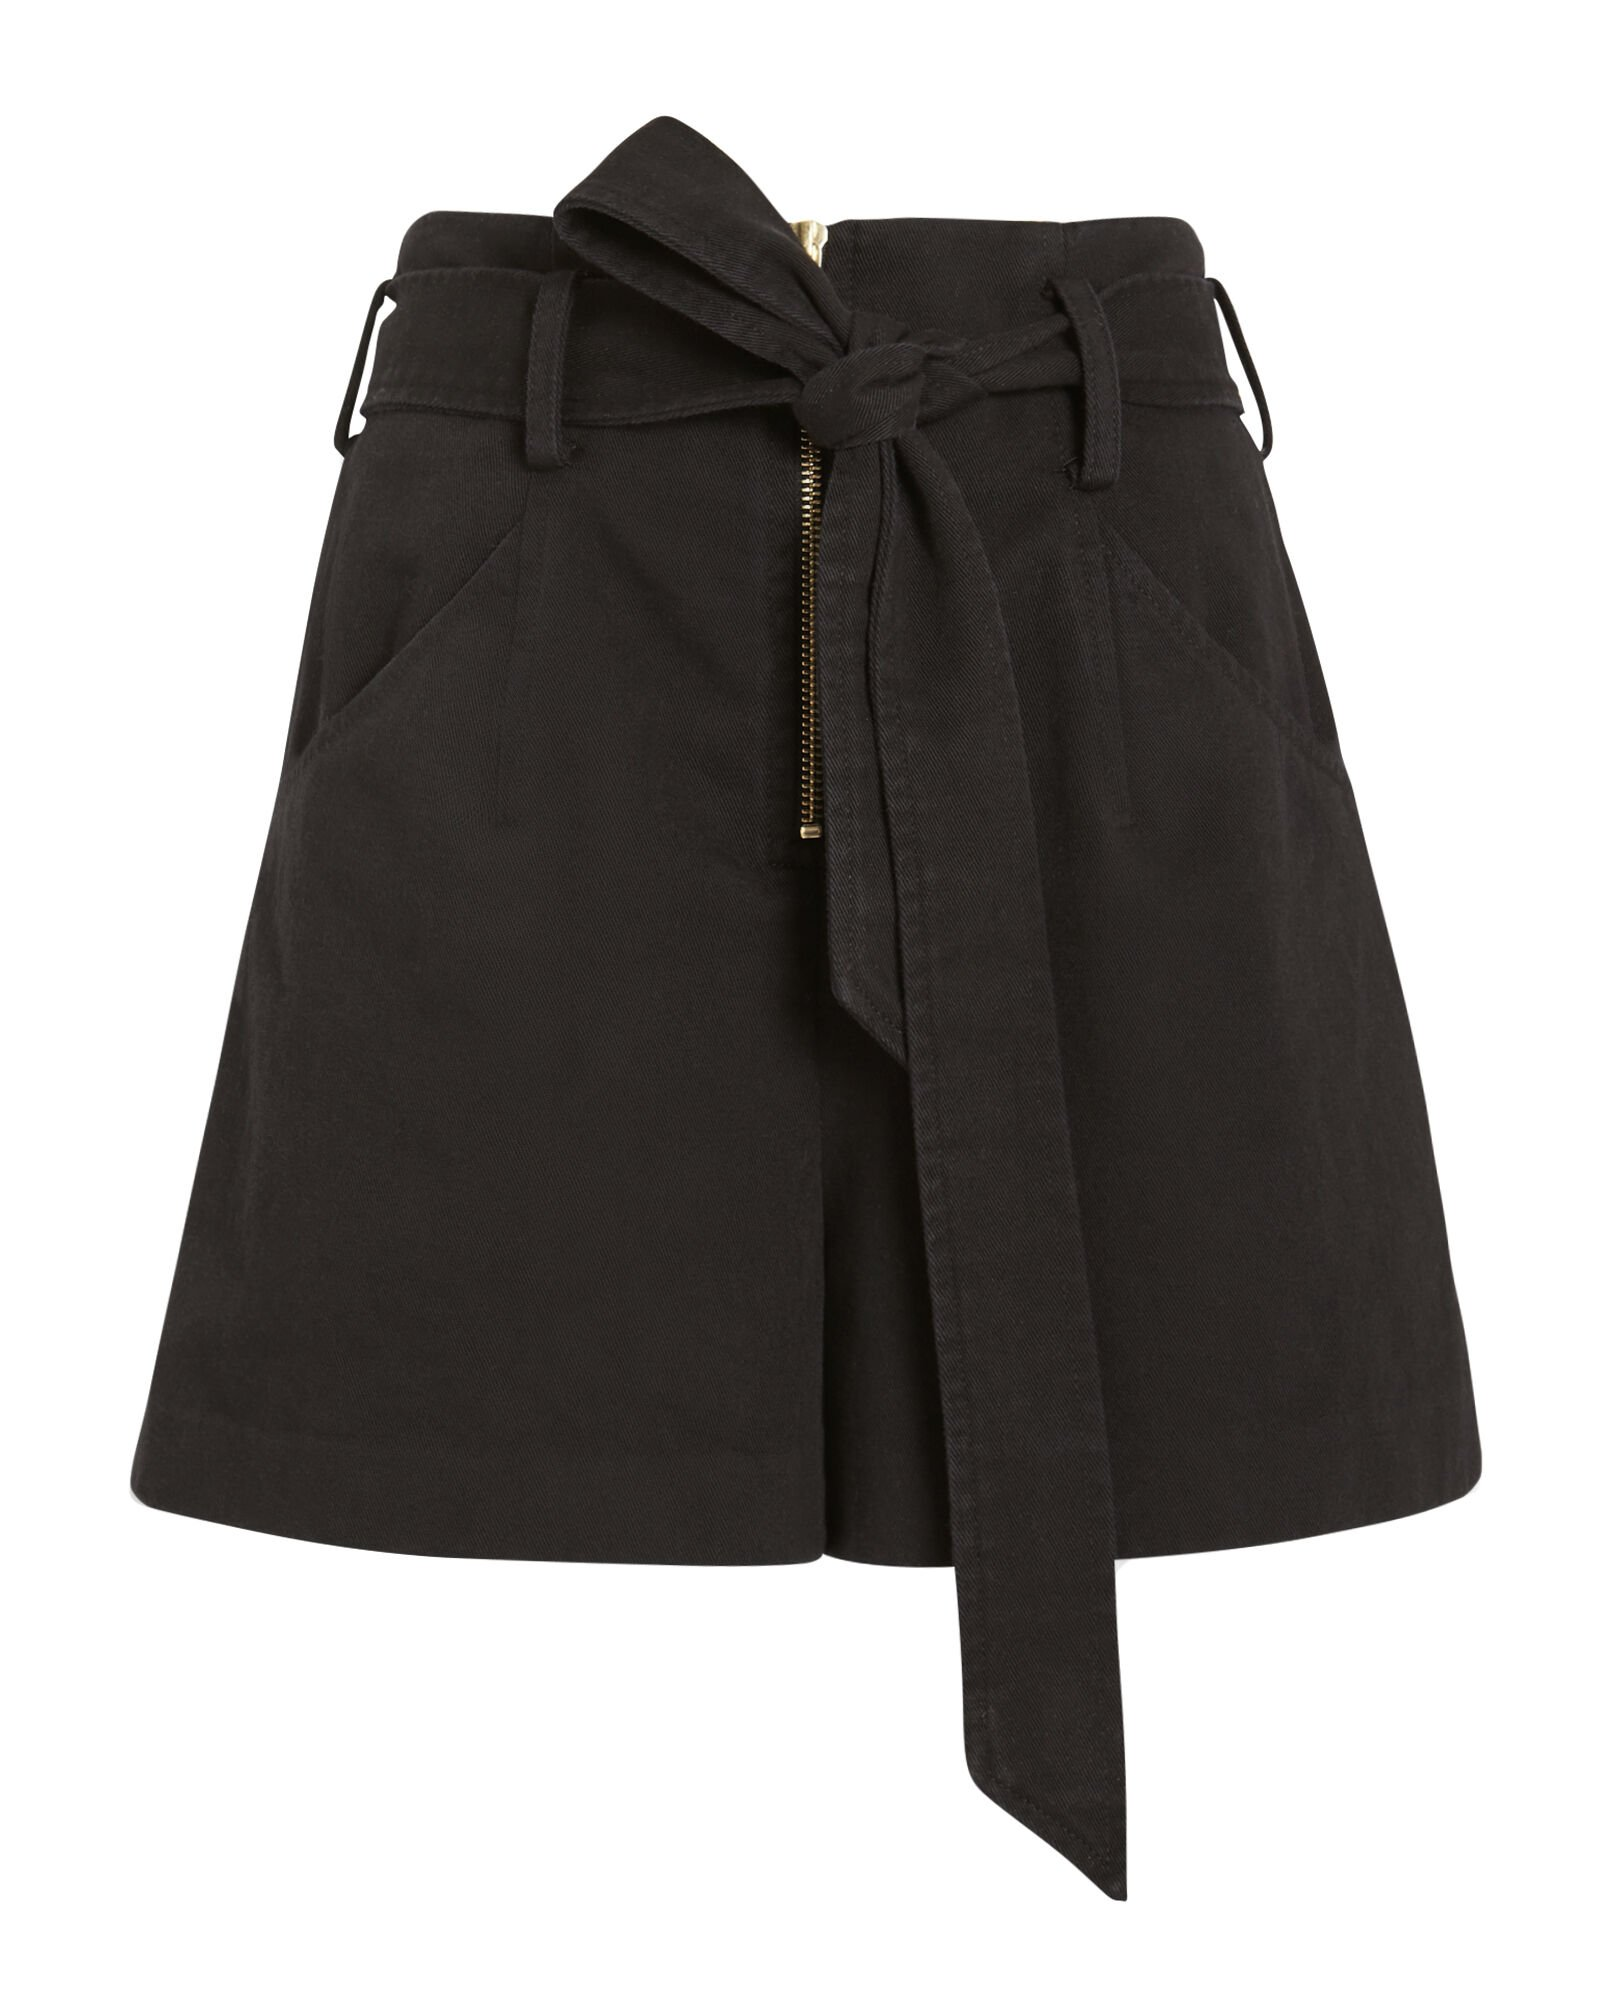 Gracie Paperbag Twill Cotton Shorts, BLACK, hi-res